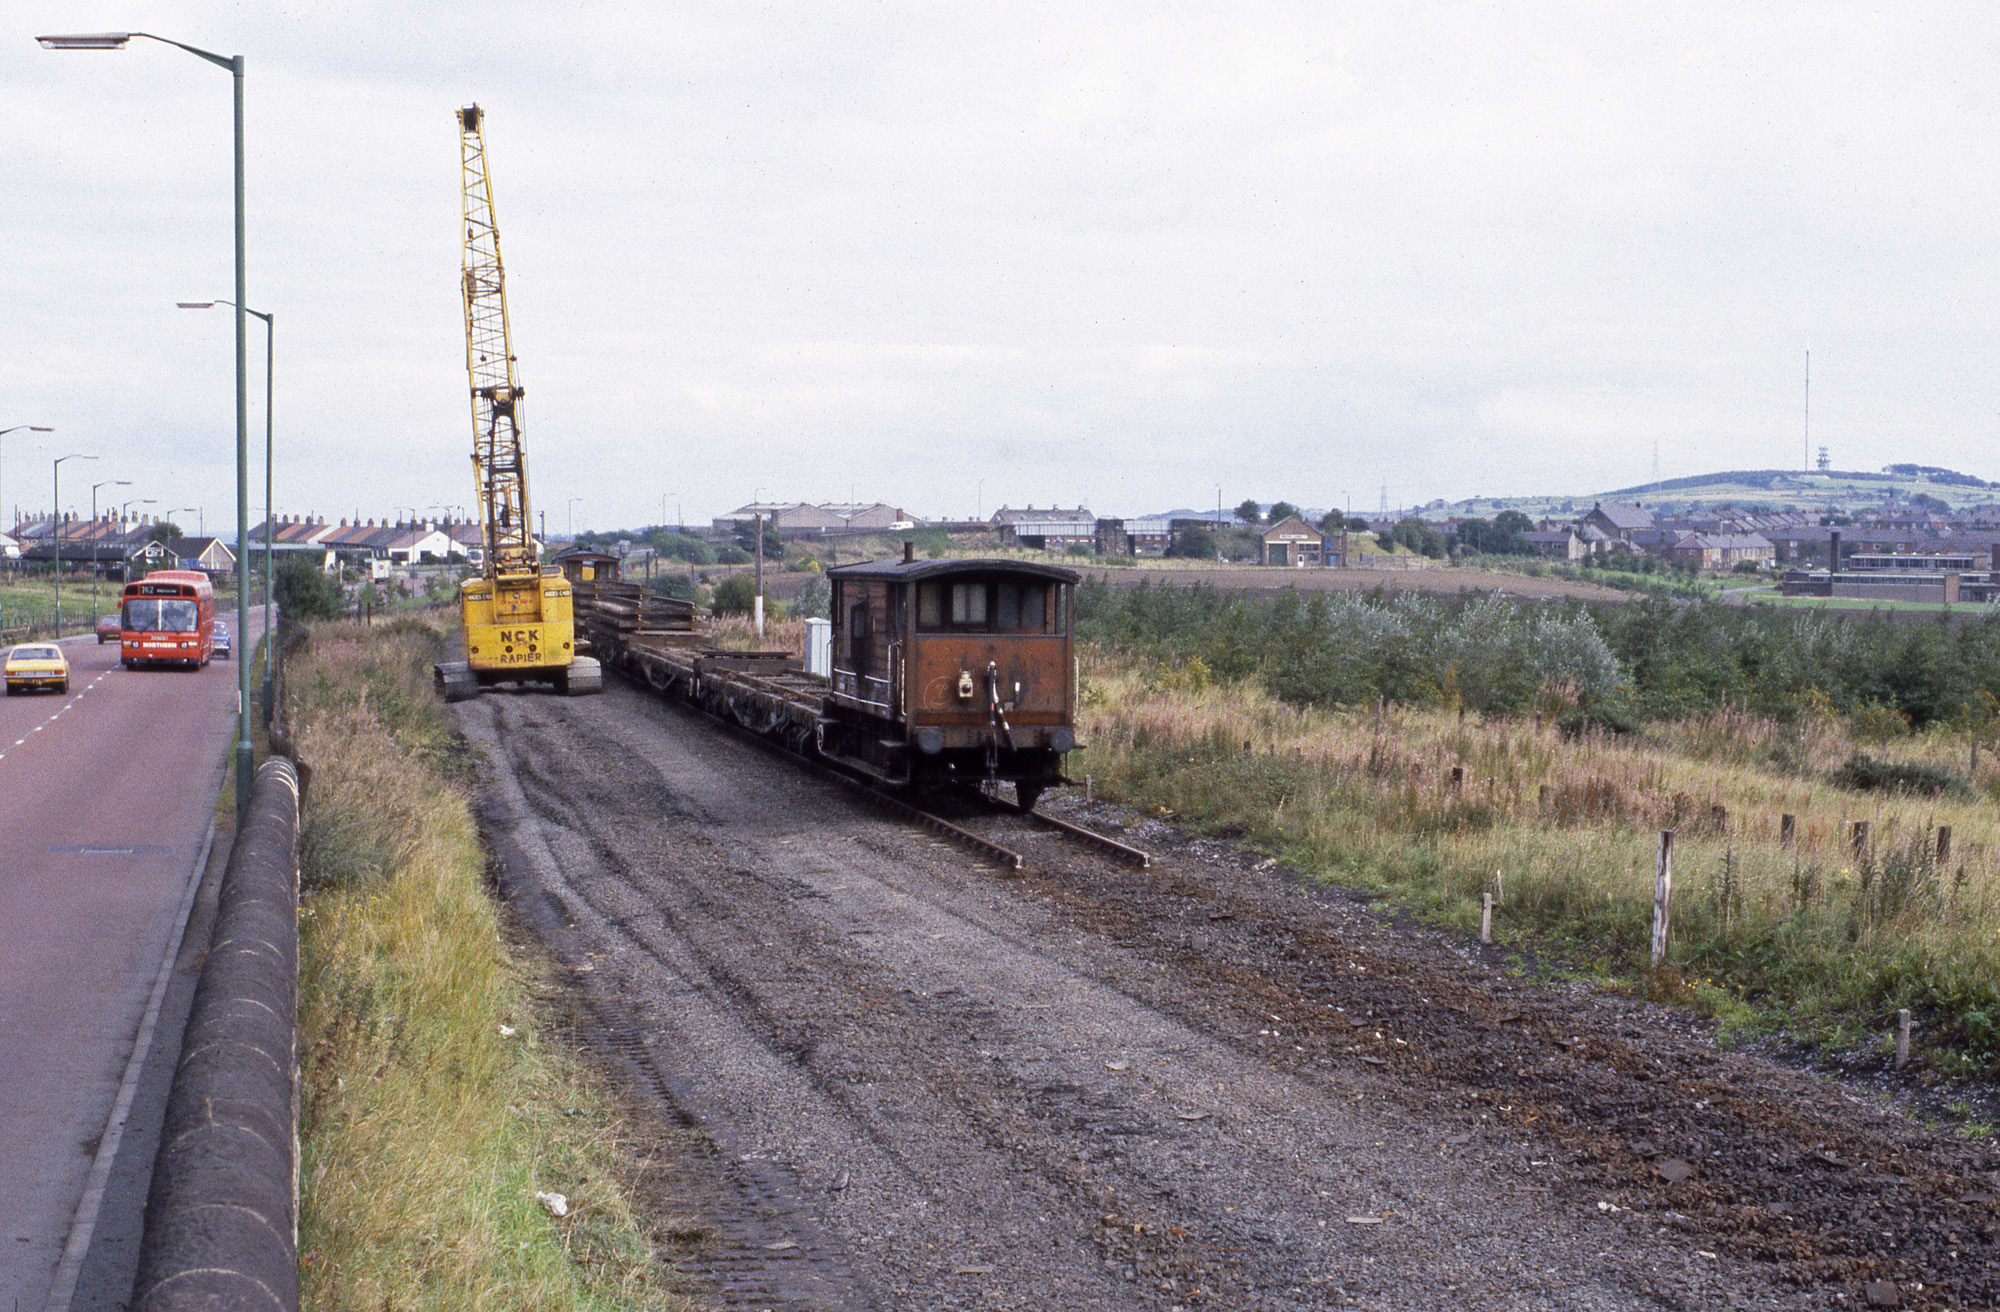 Track lifting at Consett on 25 September 1984. Note the bridge at Leadgate in the background. Photo copyright Stephen McGahon